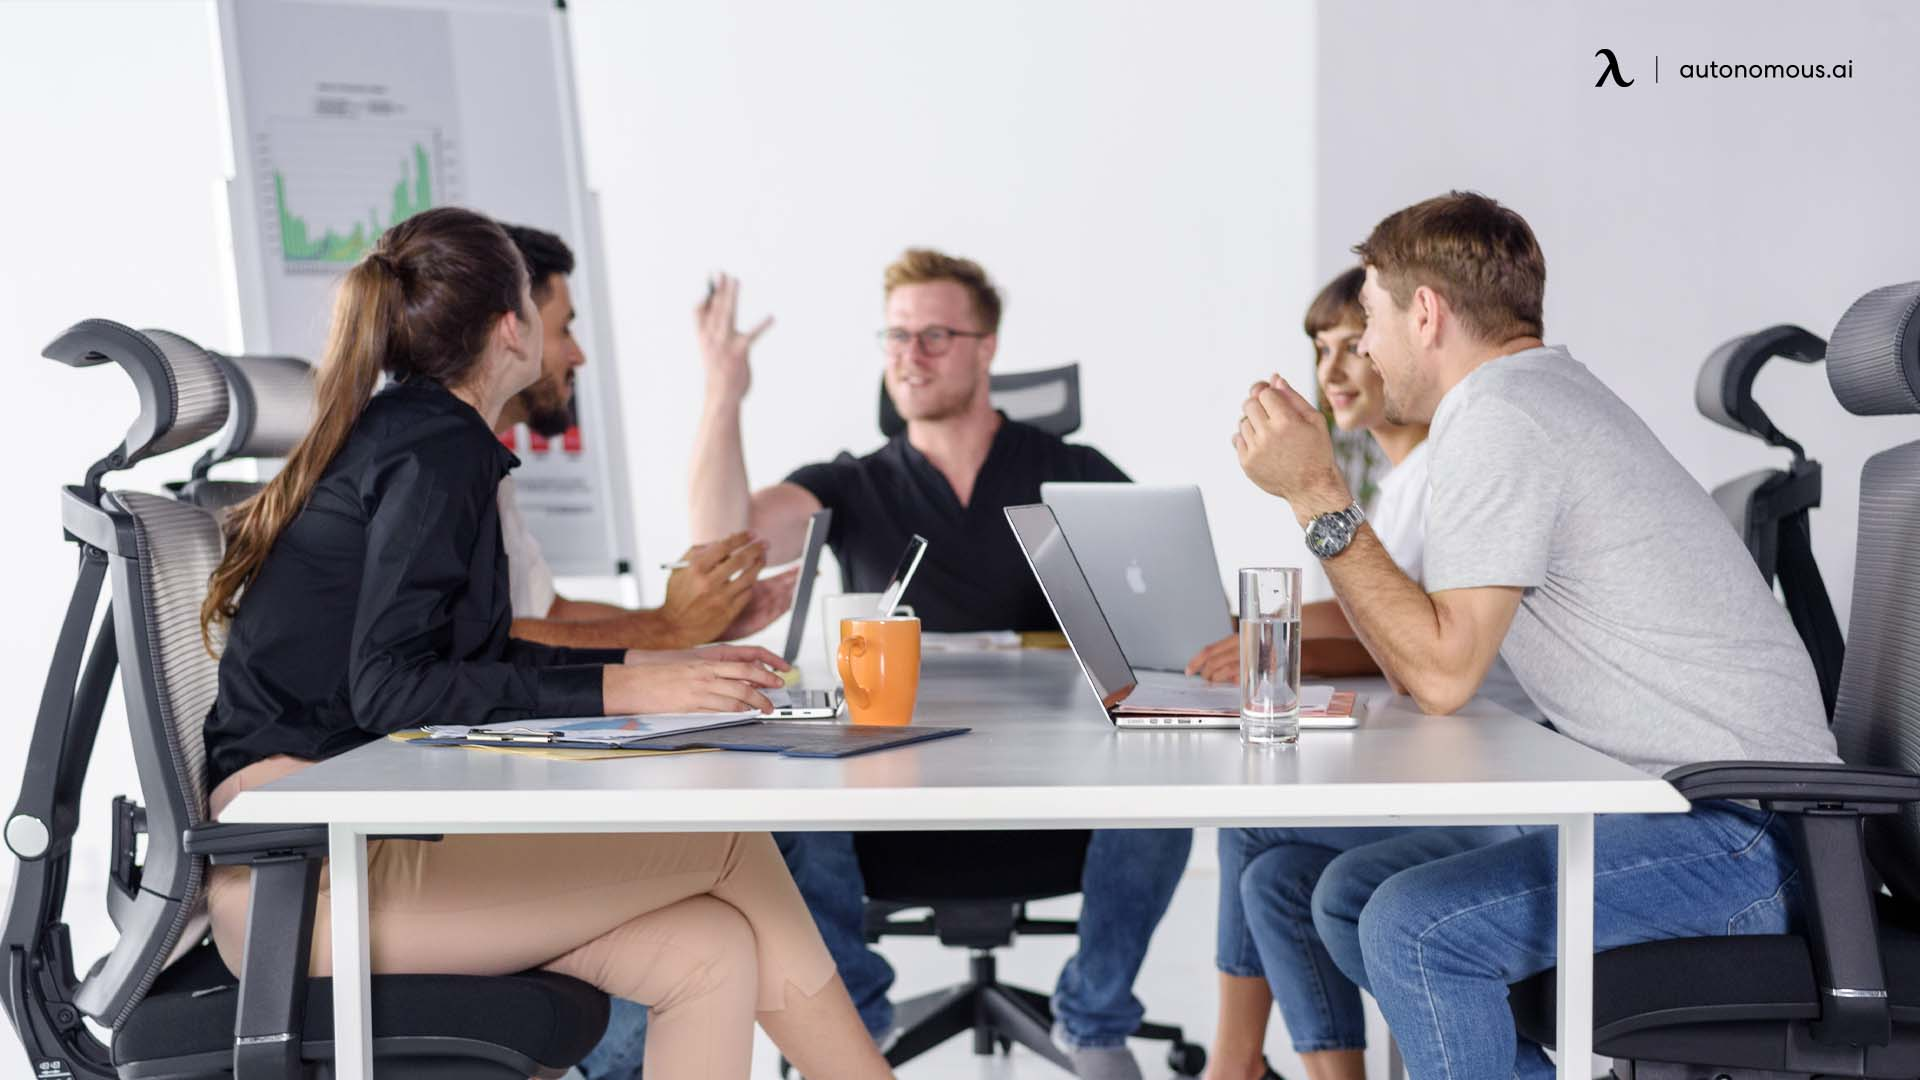 Communication is the key when it comes to managing a hybrid workforce